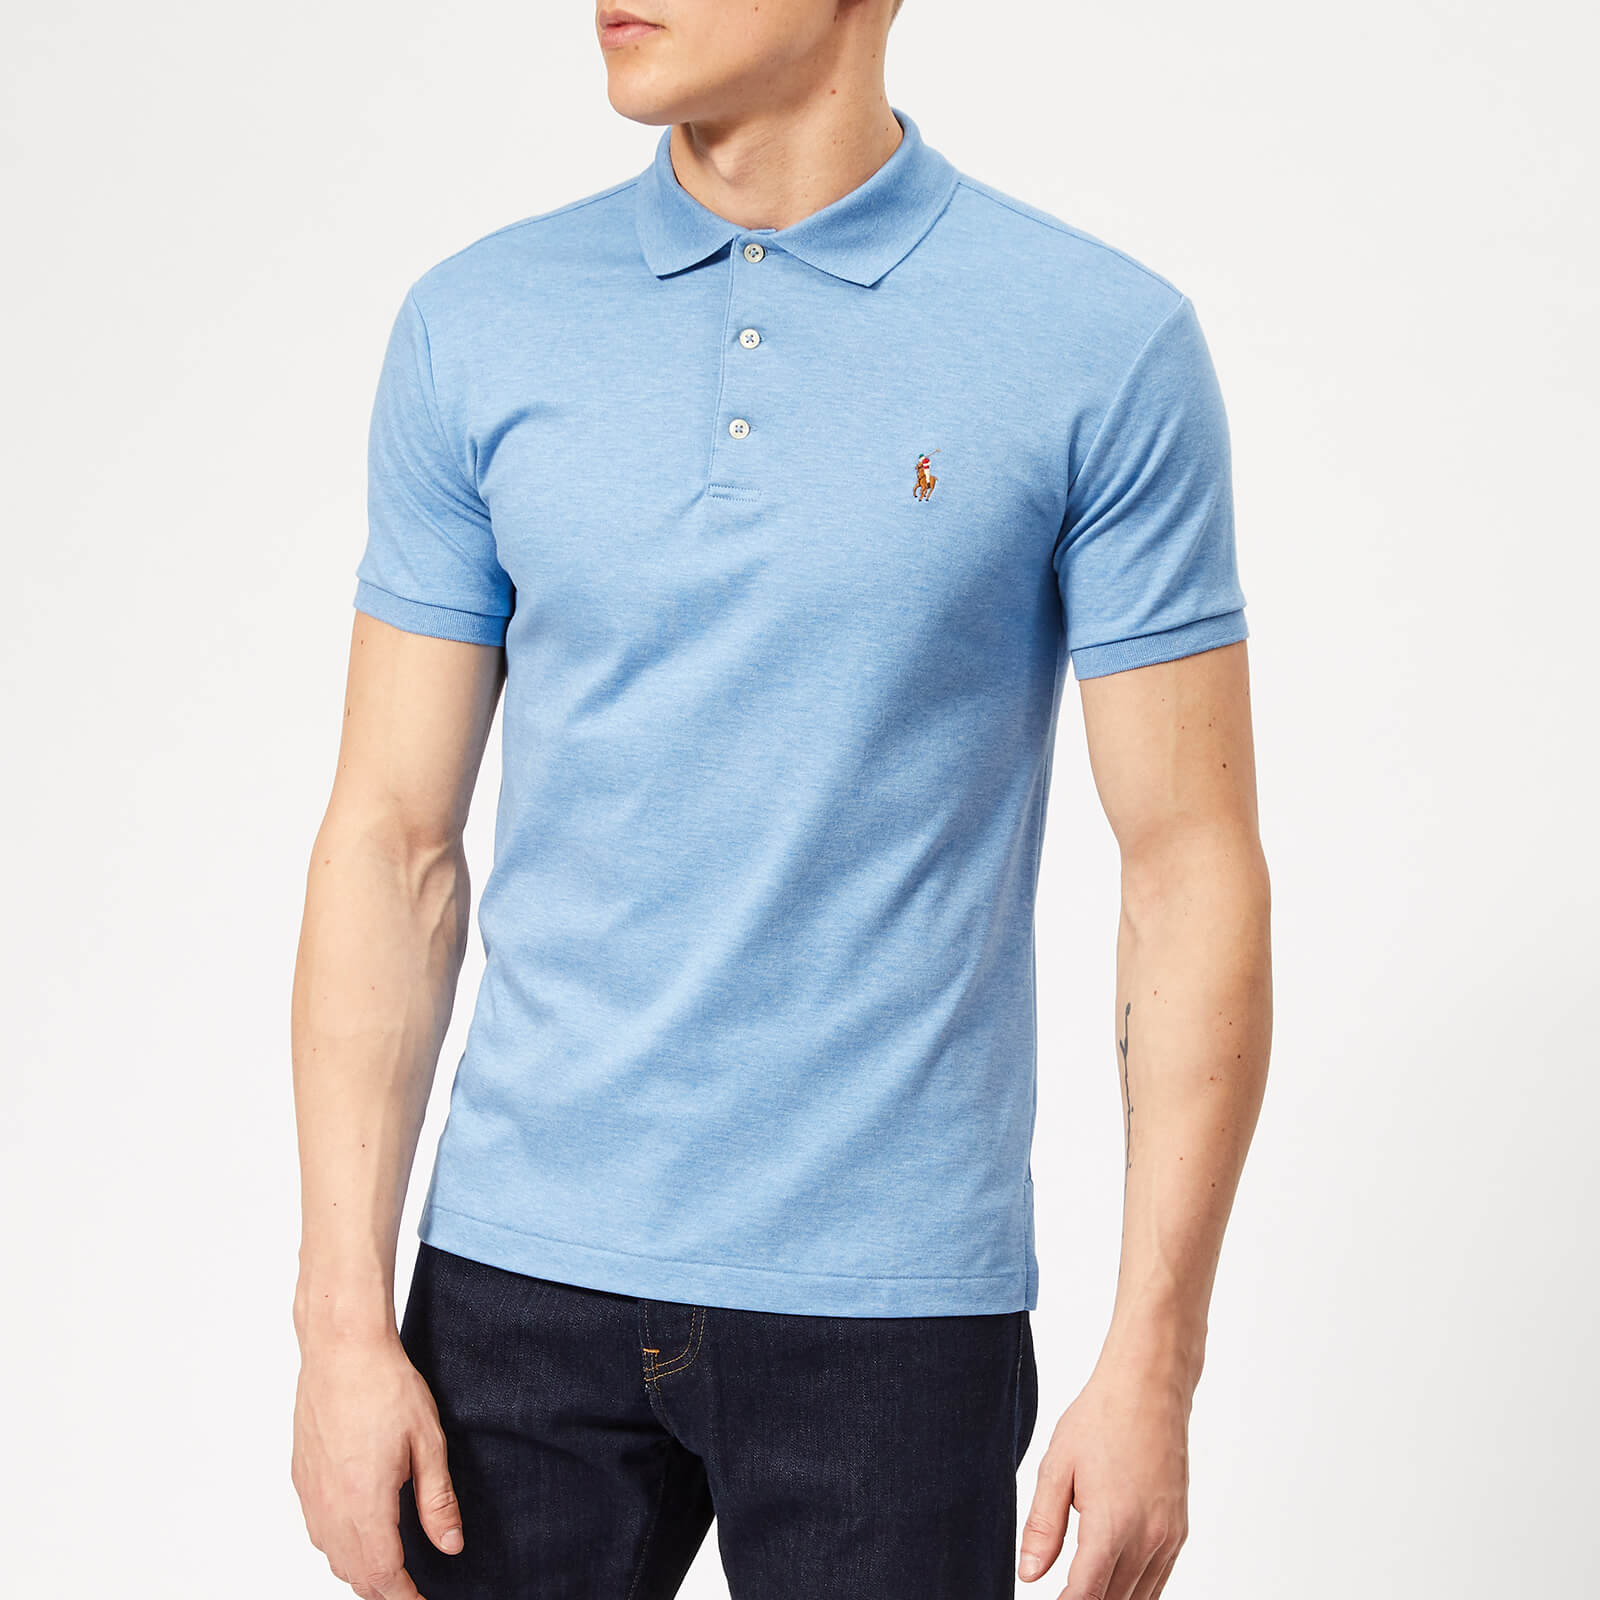 910288321 Polo Ralph Lauren Men s Pima Cotton Slim Fit Polo Shirt - Soft Royal  Heather - Free UK Delivery over £50